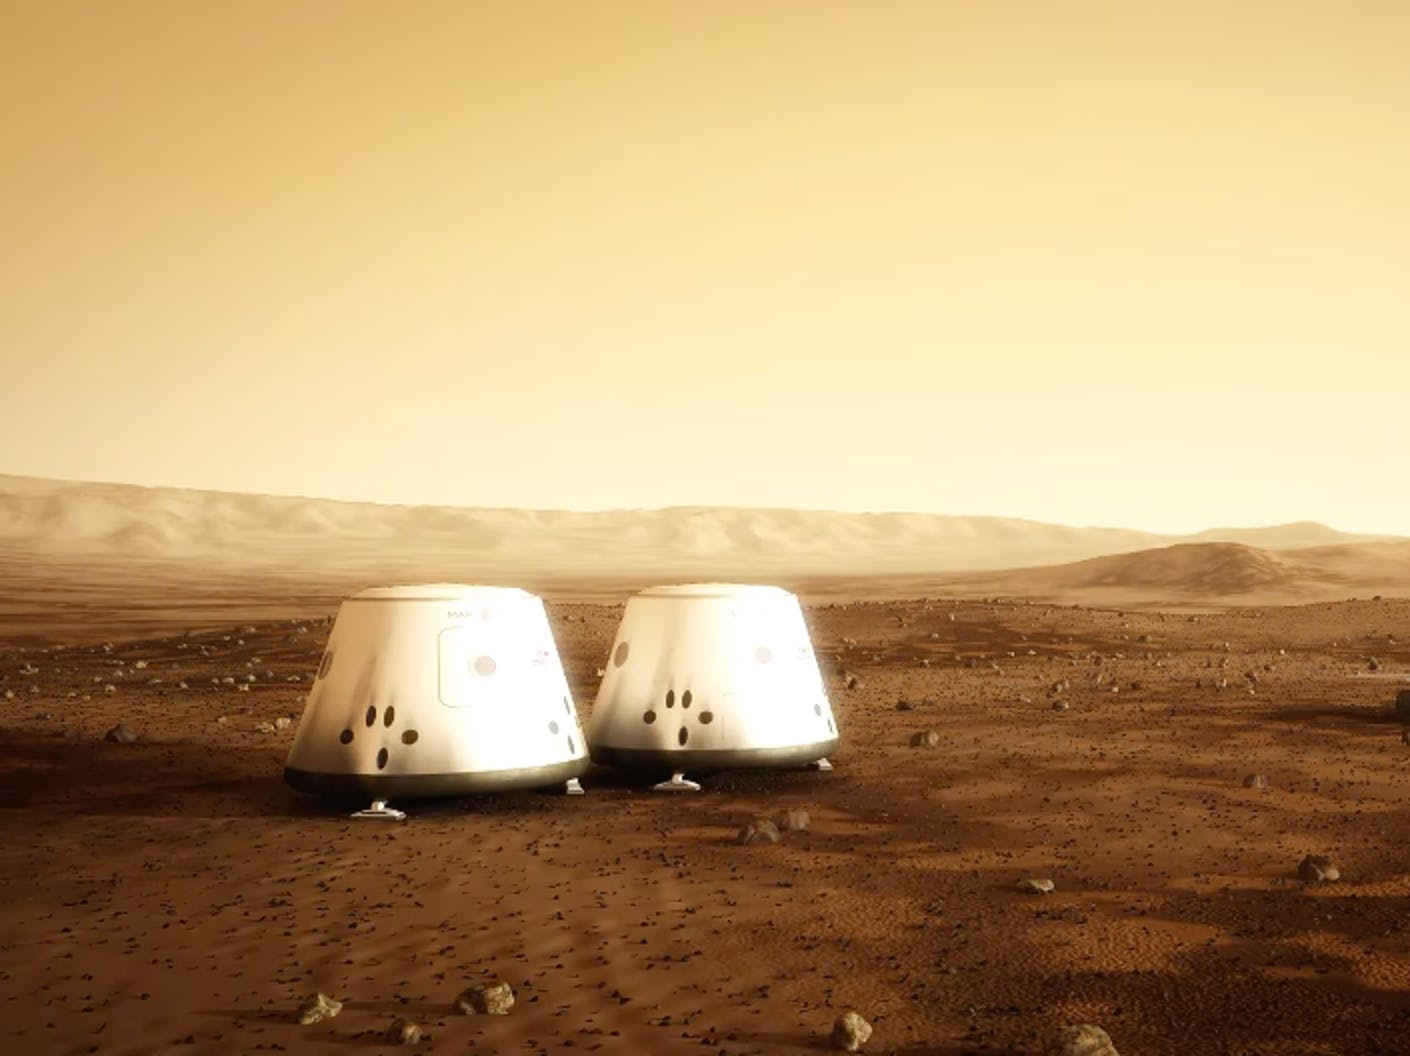 Mars One outpost